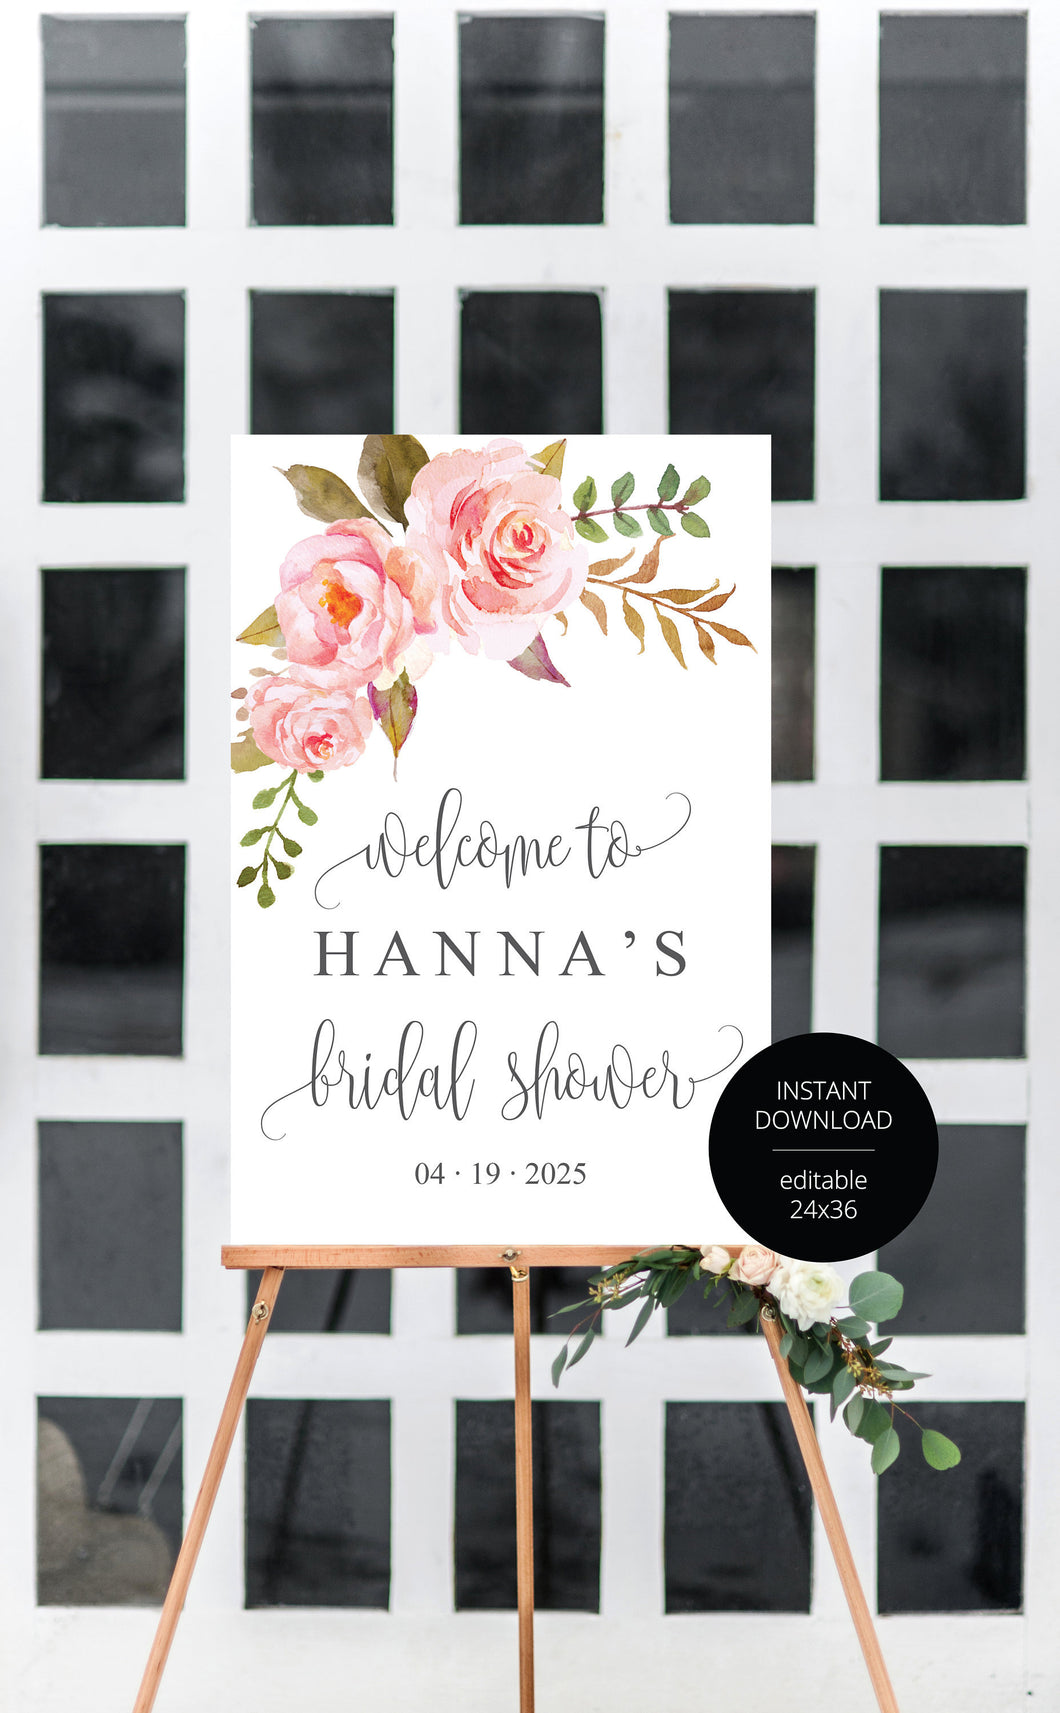 Bridal Shower Welcome Sign Printable Template Editable Instant Download Floral Wedding Décor  -HANNA